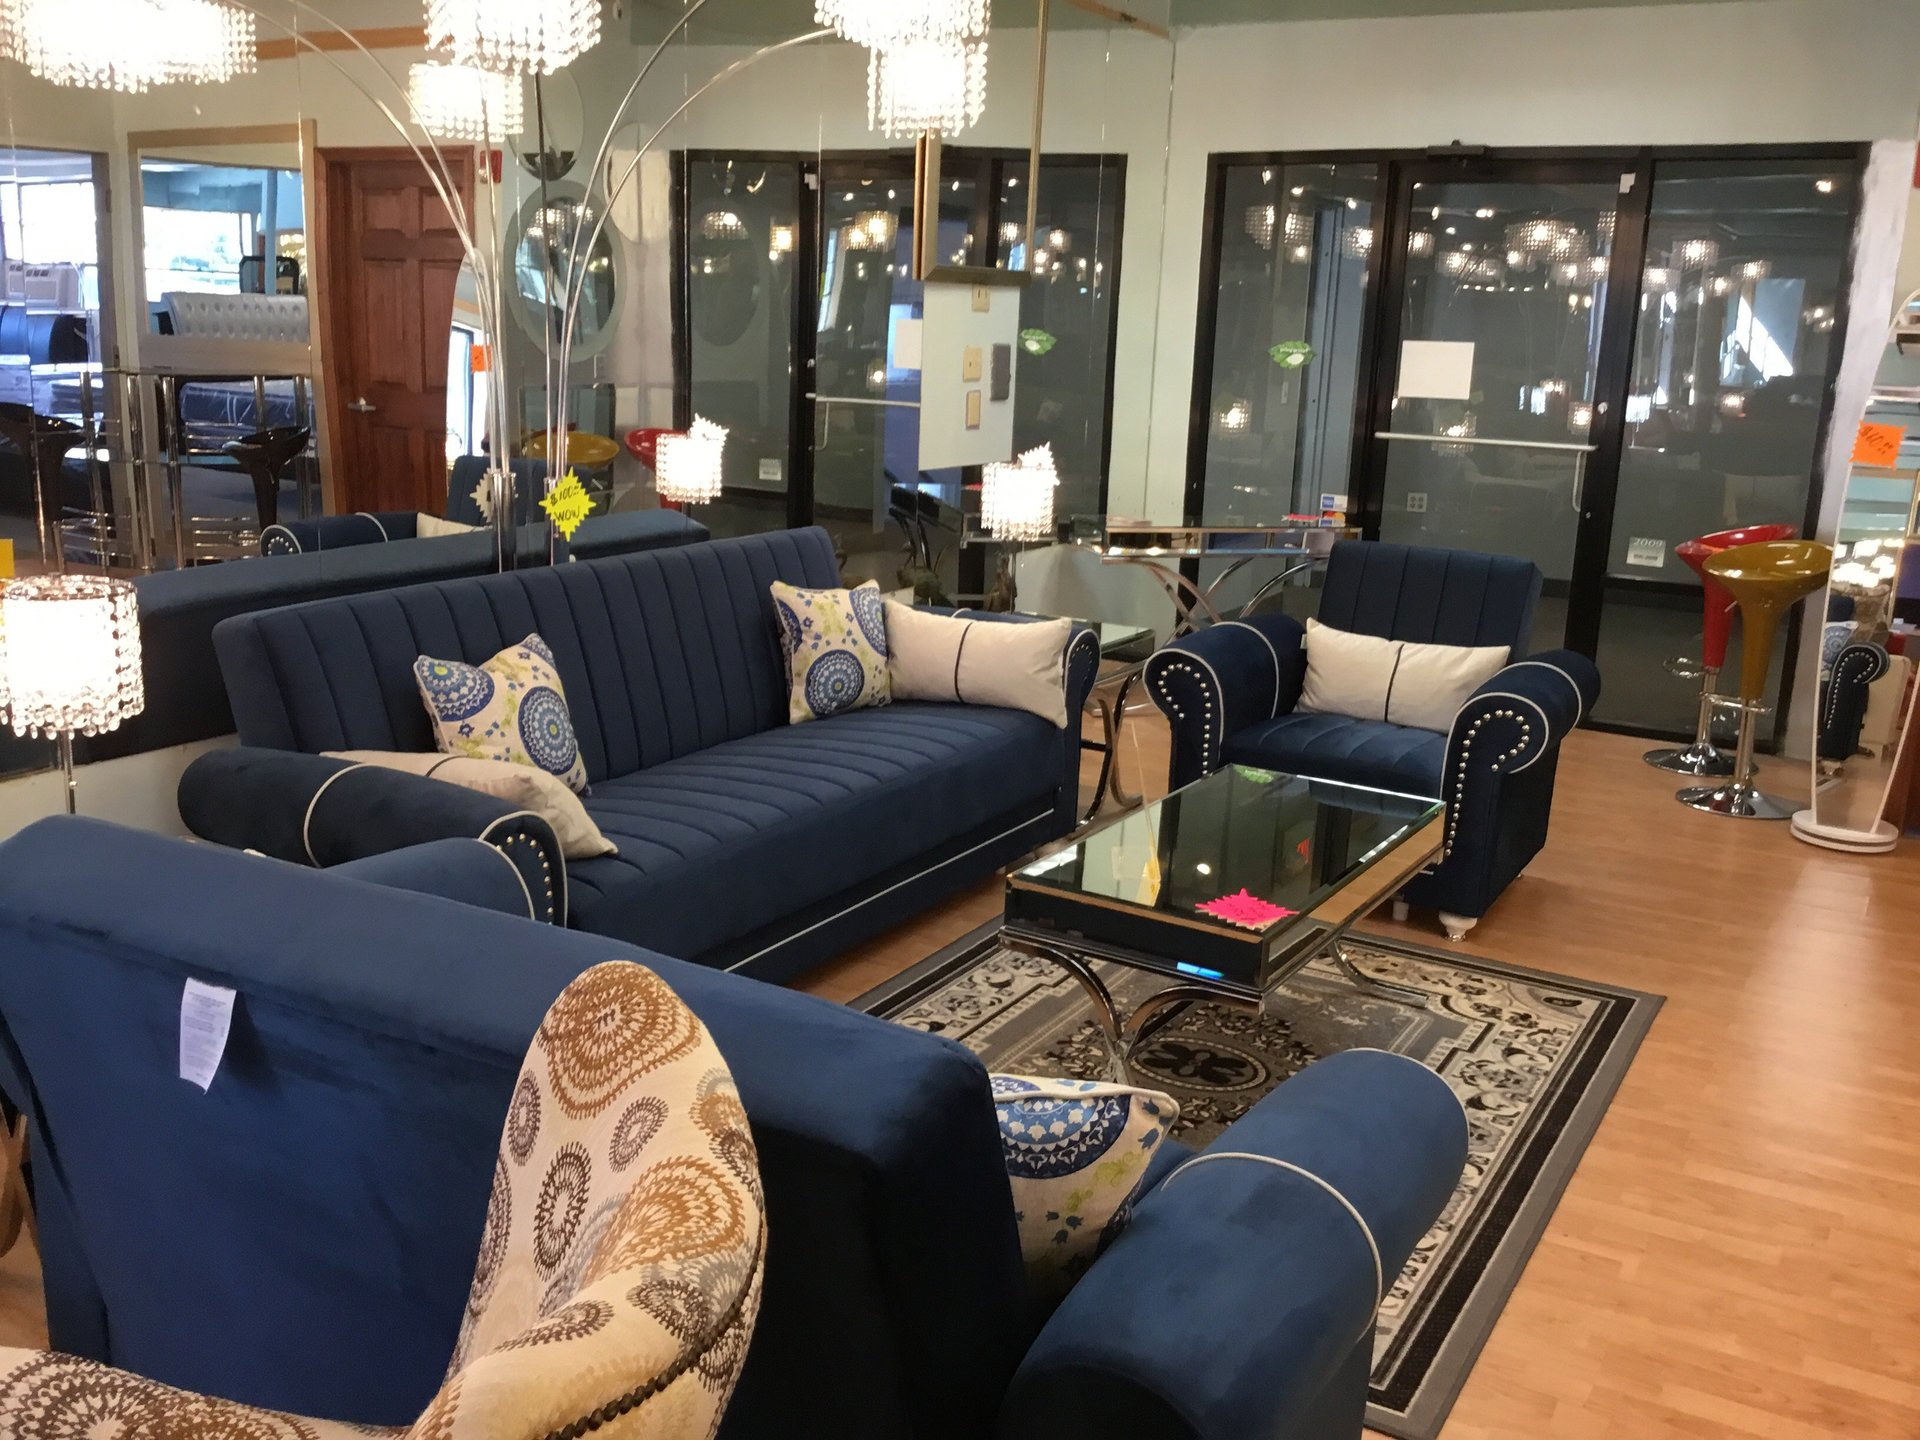 Get the Best Deals in Modern Furniture Today  Furniture Store. Icelso s Furniture Store   Home Furniture   Lawrence MA